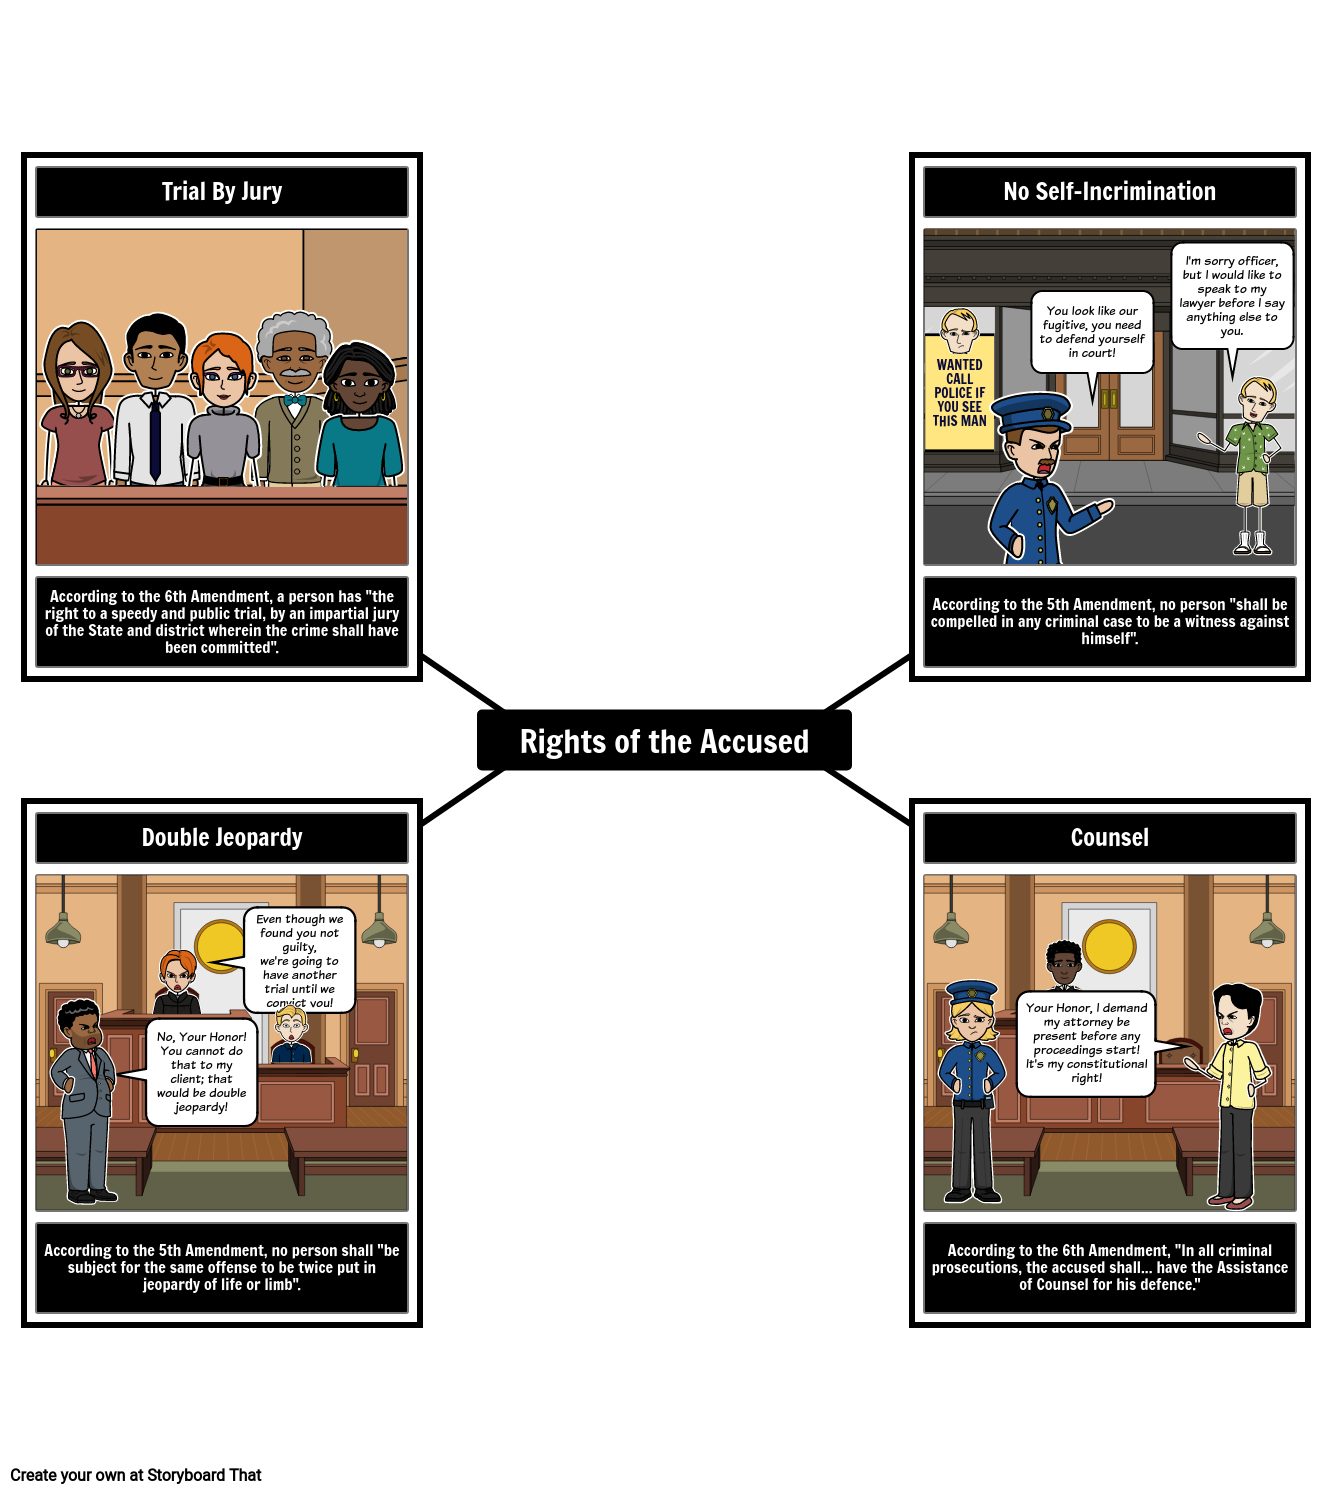 the bill of rights rights of the accused storyboard